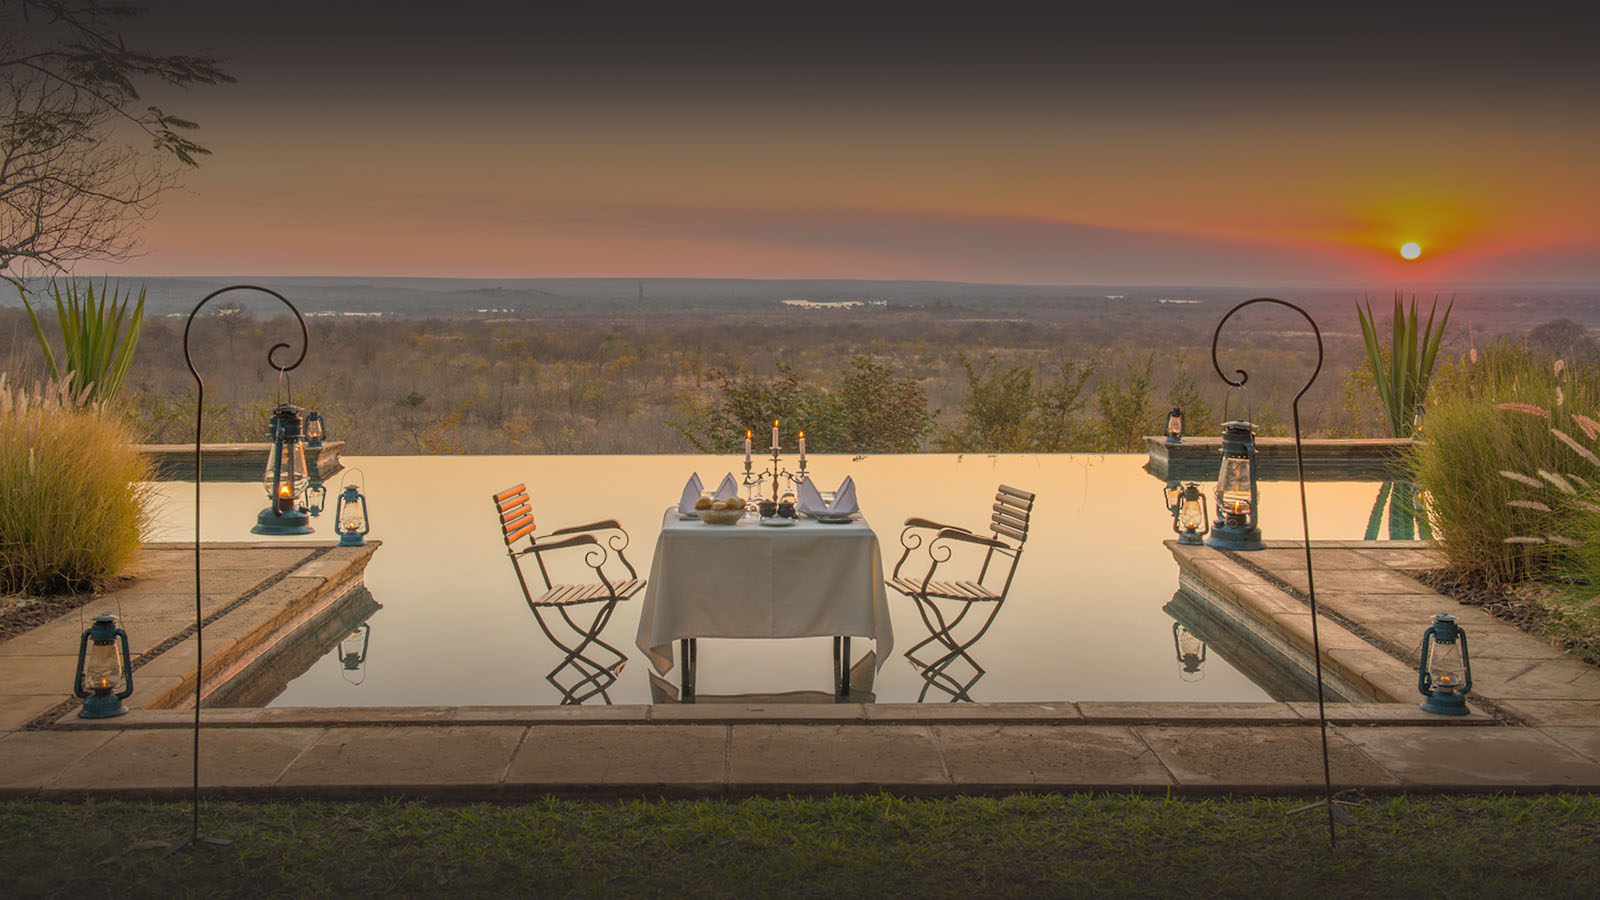 stanley safari lodge livingstone-lodges-zambia-in-style-african-styled-accommodation-dinner-poolside